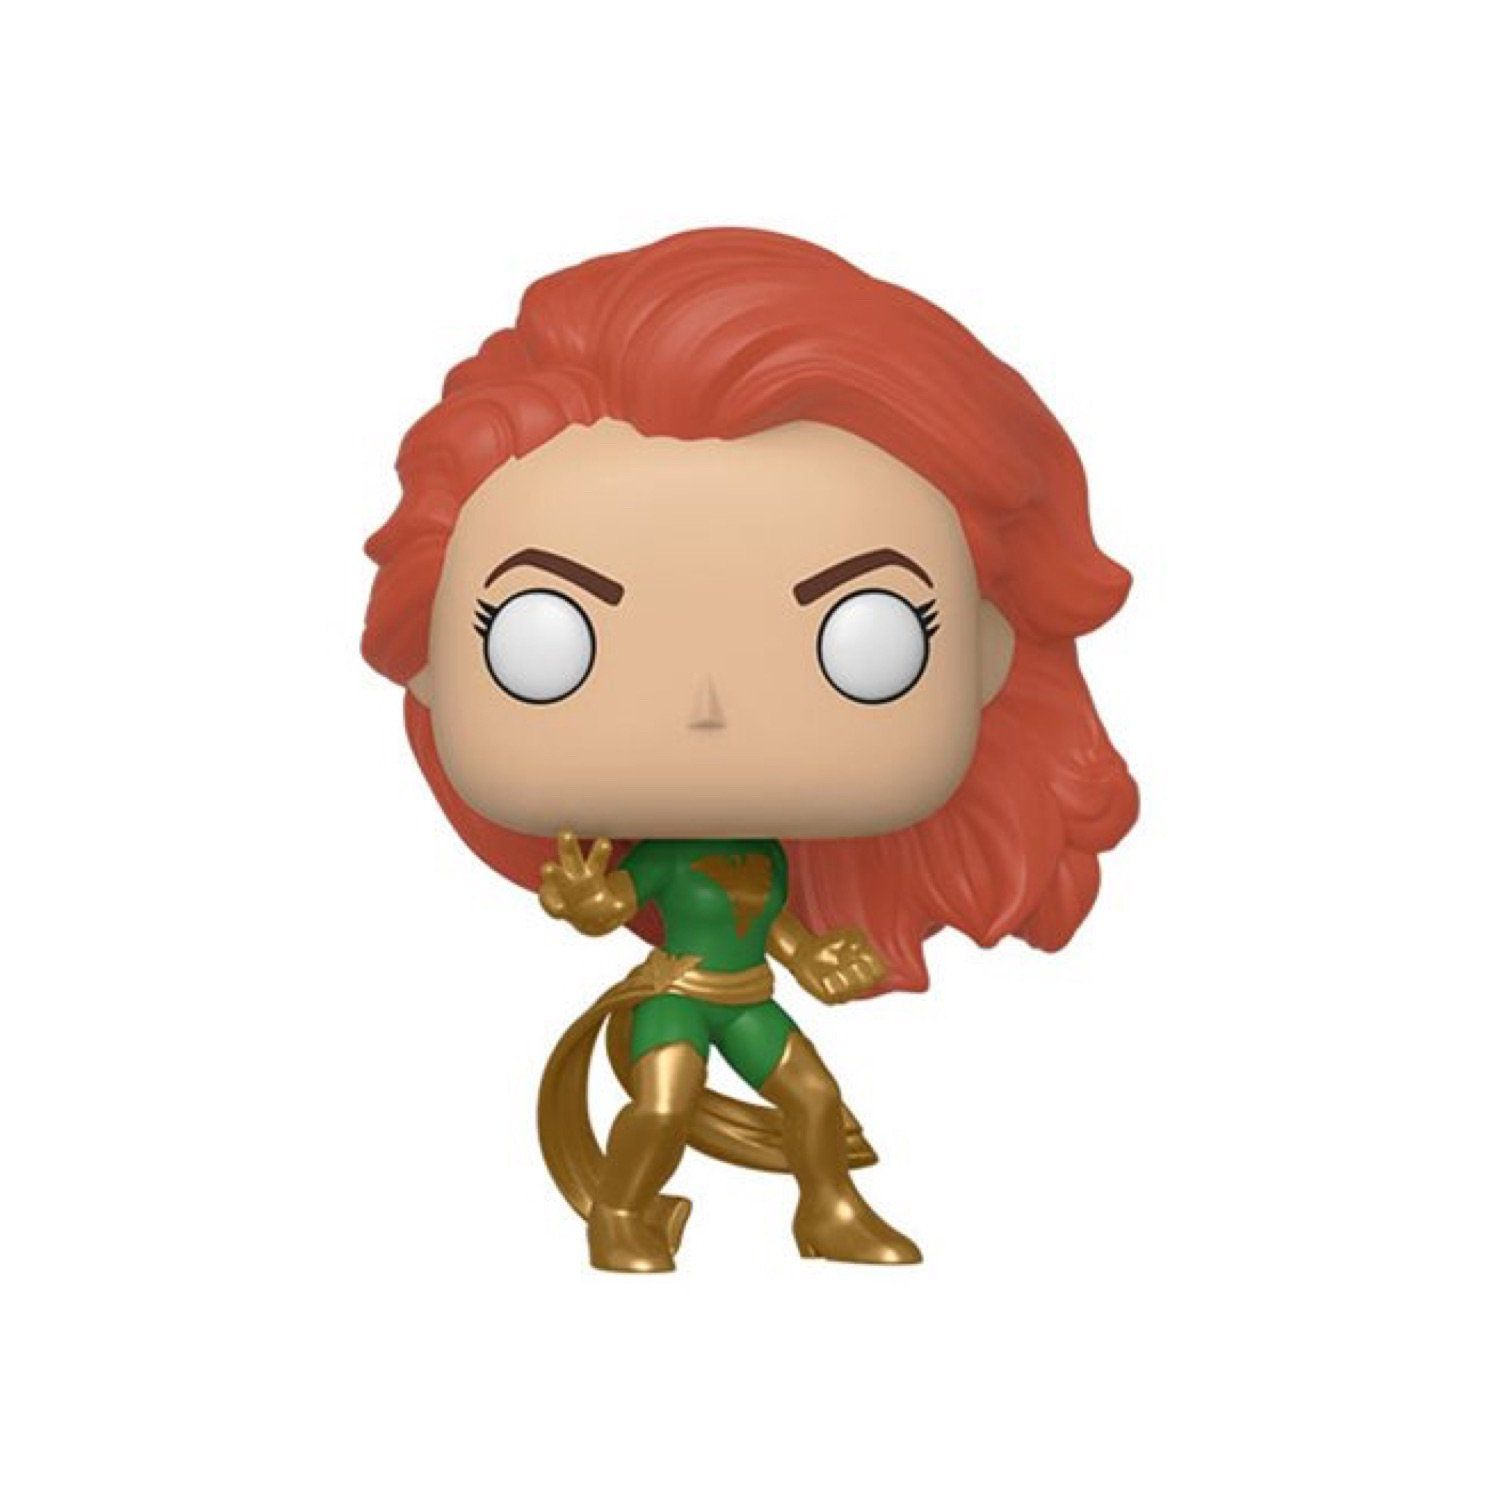 Funko Pop Phoenix X-men Exclusiva EE Gitd #422  - Game Land Brinquedos